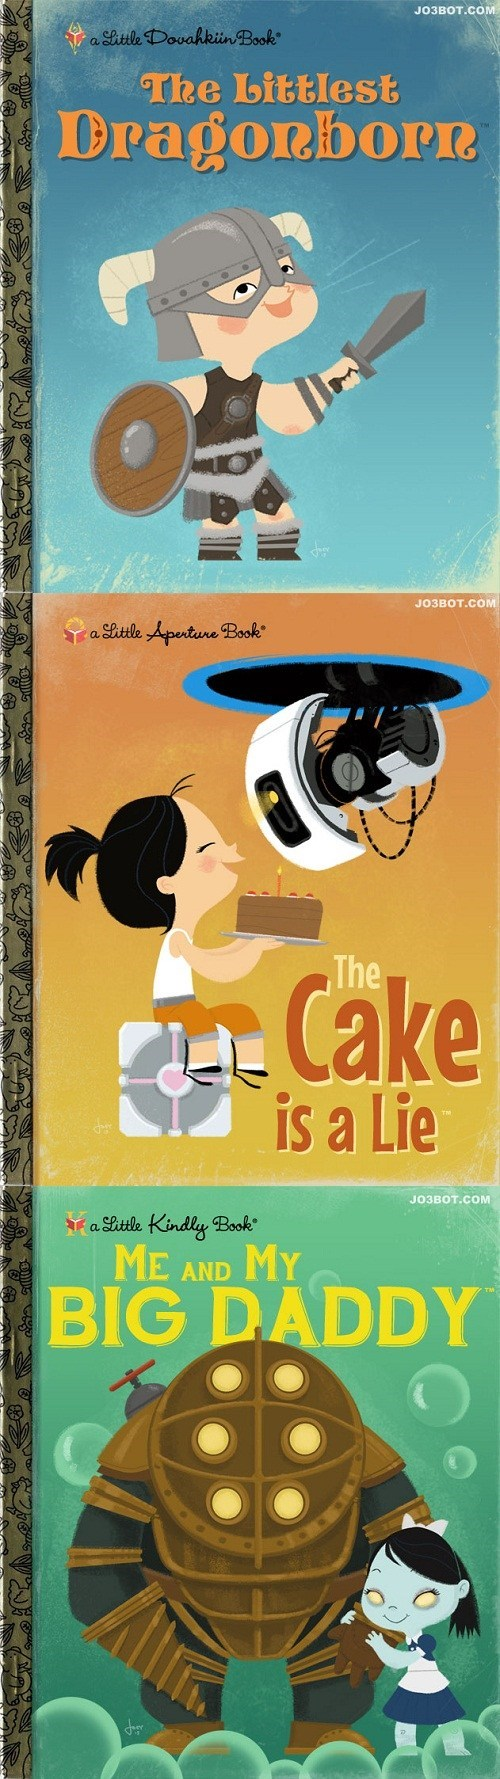 What if Video Games Were Made Into Children's Books?